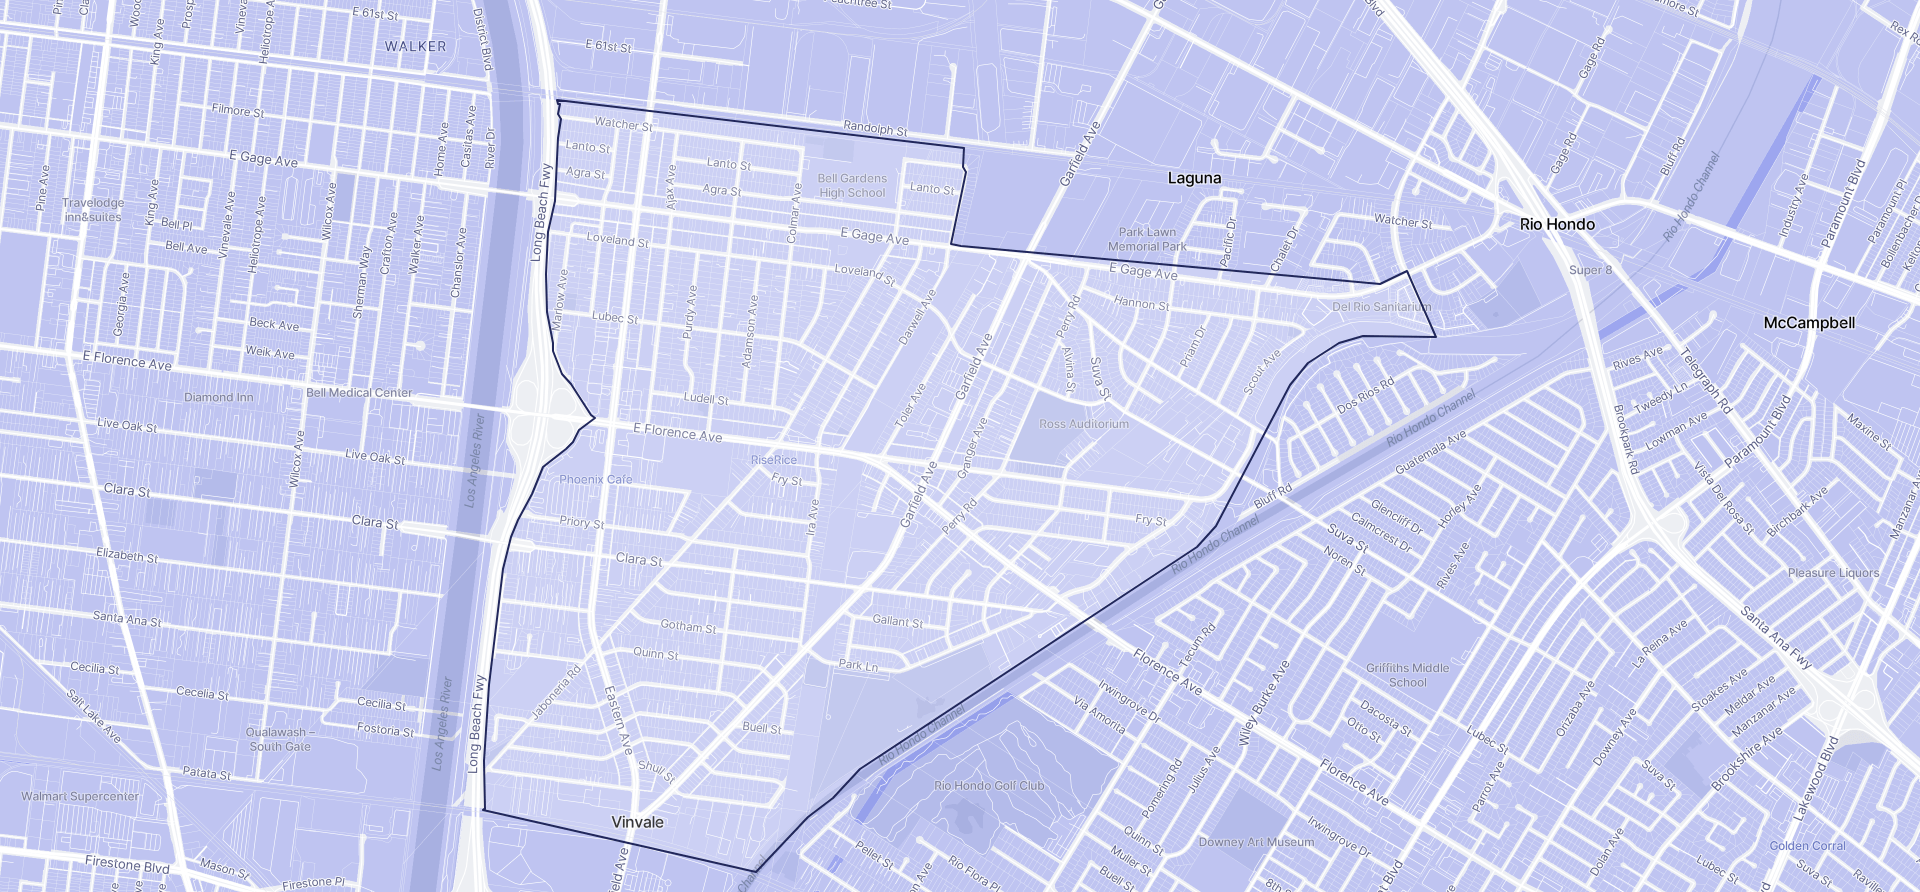 Image of Bell Gardens boundaries on a map.